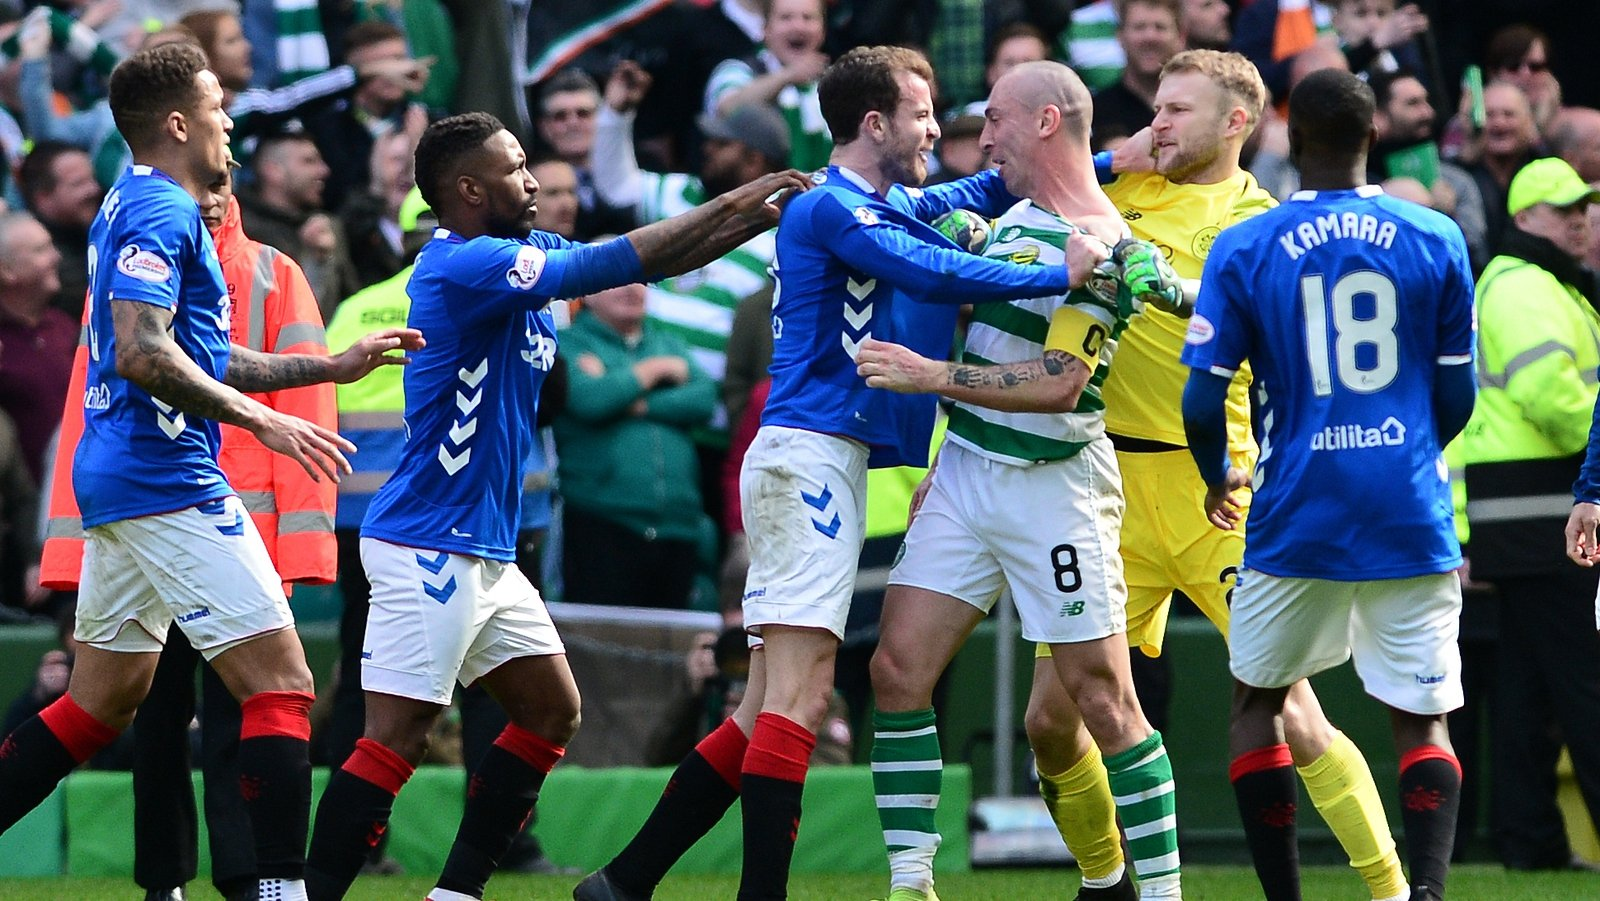 Image - The Old Firm rivalry has potentially weakened Scottish football overall